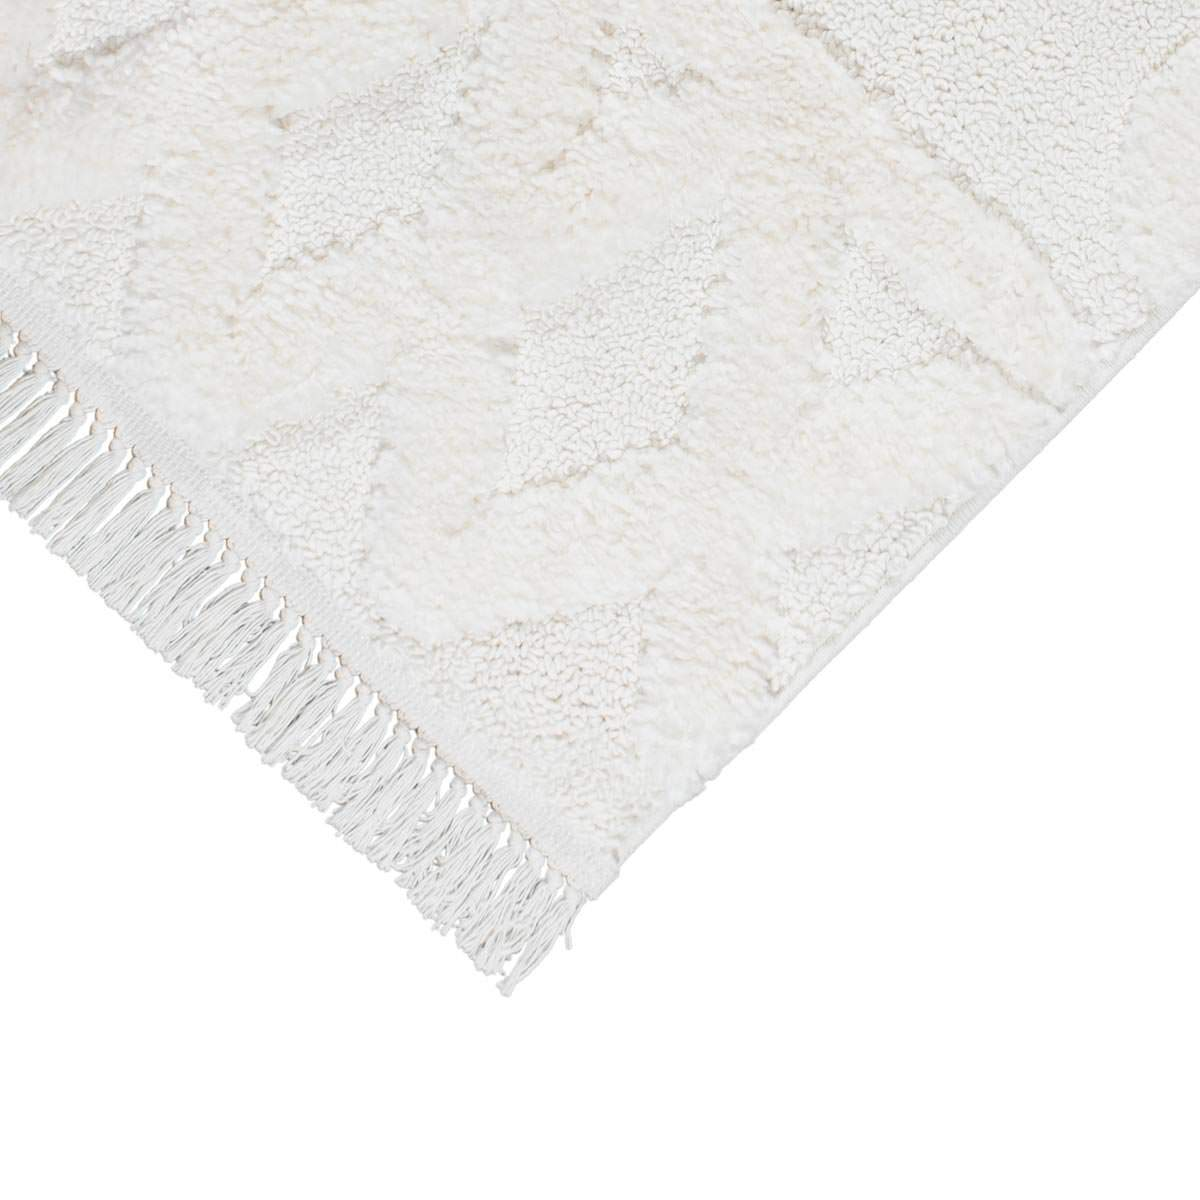 Atlas Rug 11 Cream Runner - Fringes 3